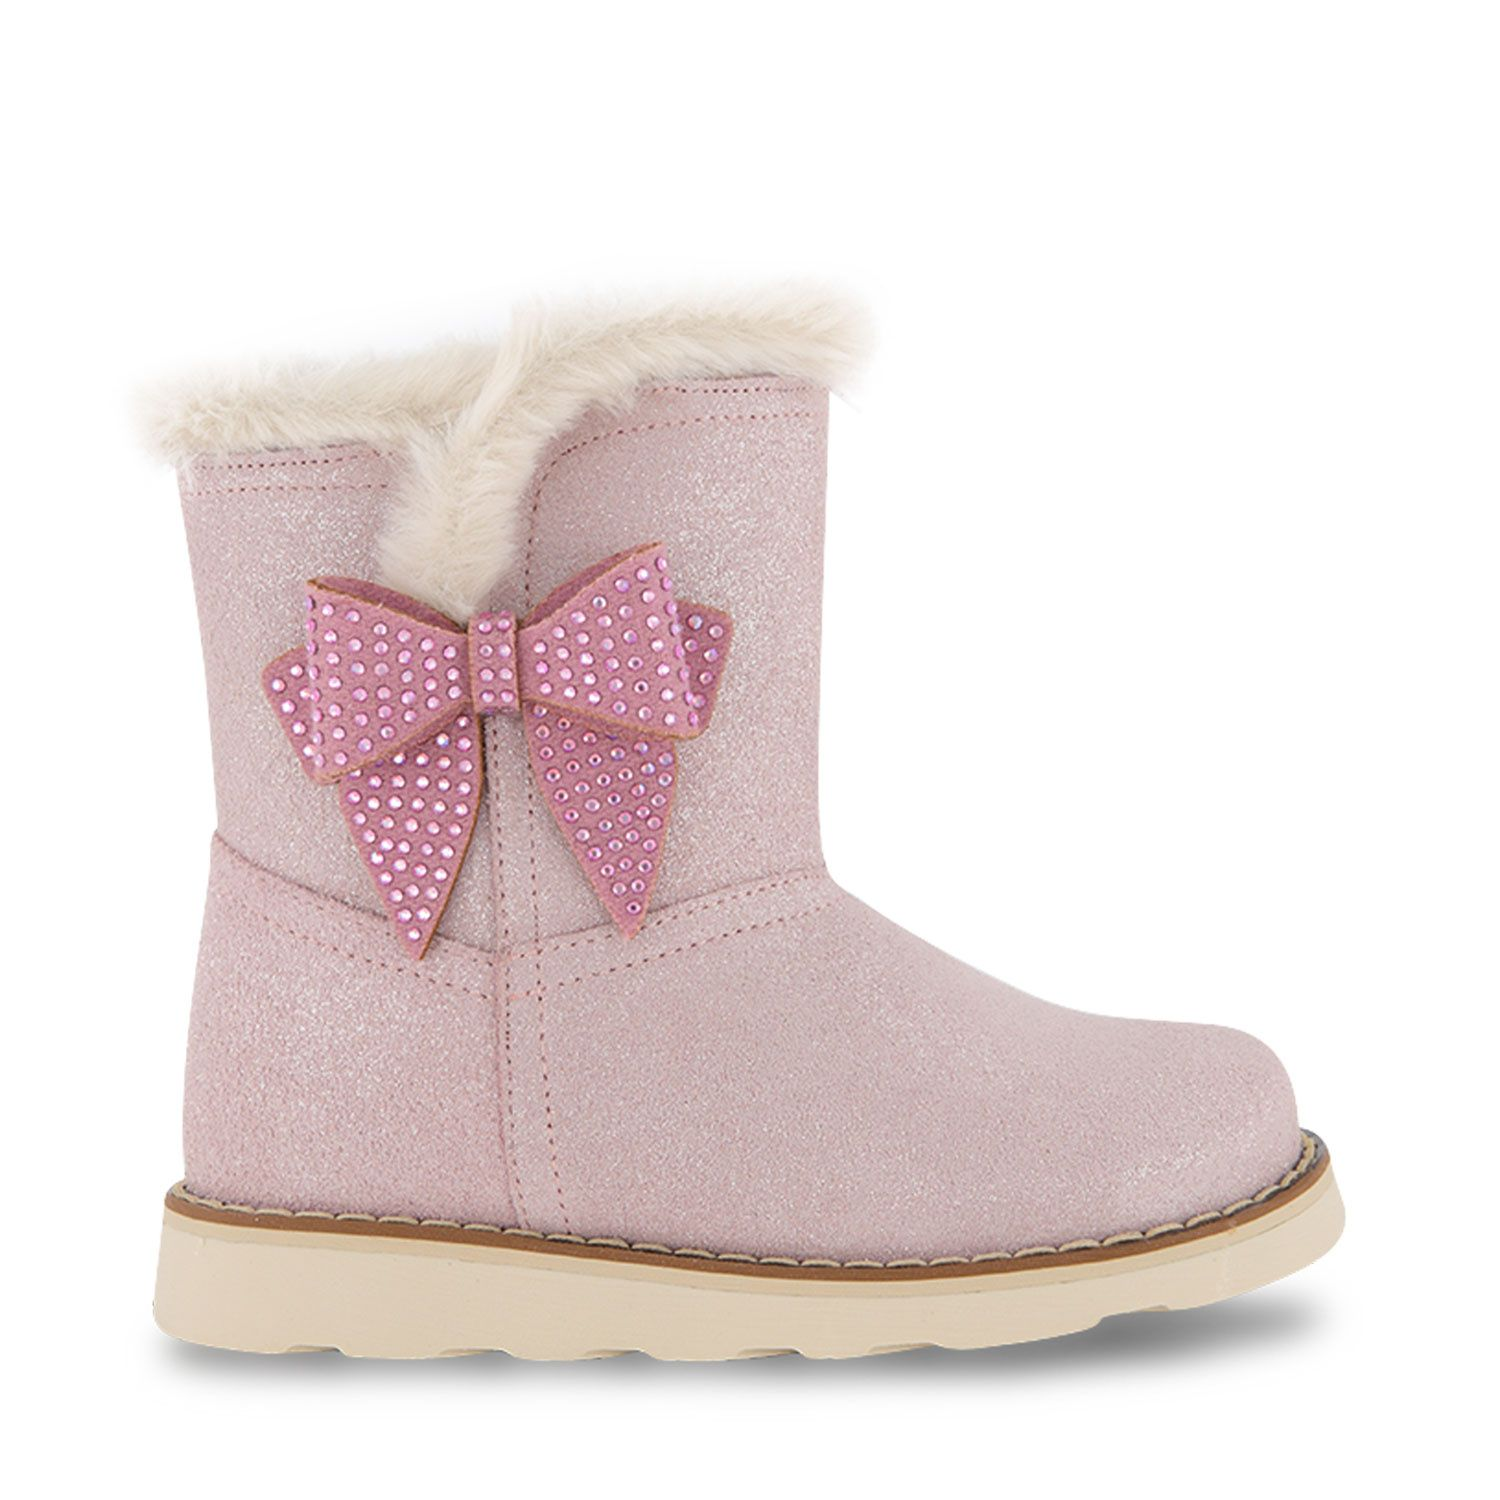 Picture of MonnaLisa 838016 kids boots light pink